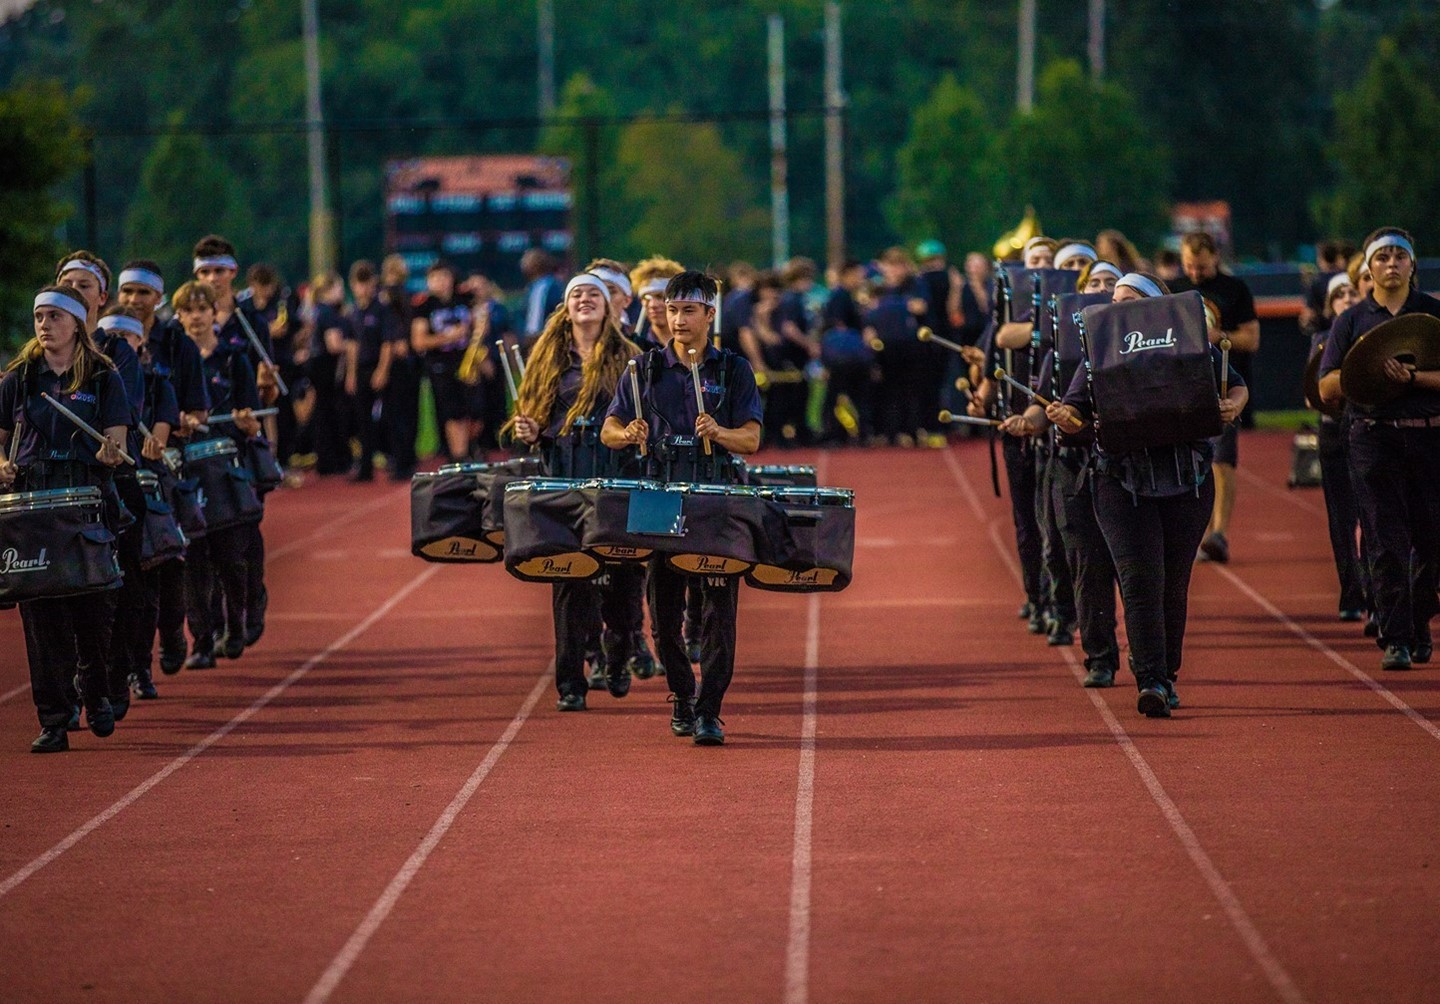 Mount Vernon High School drumline marching down the track.